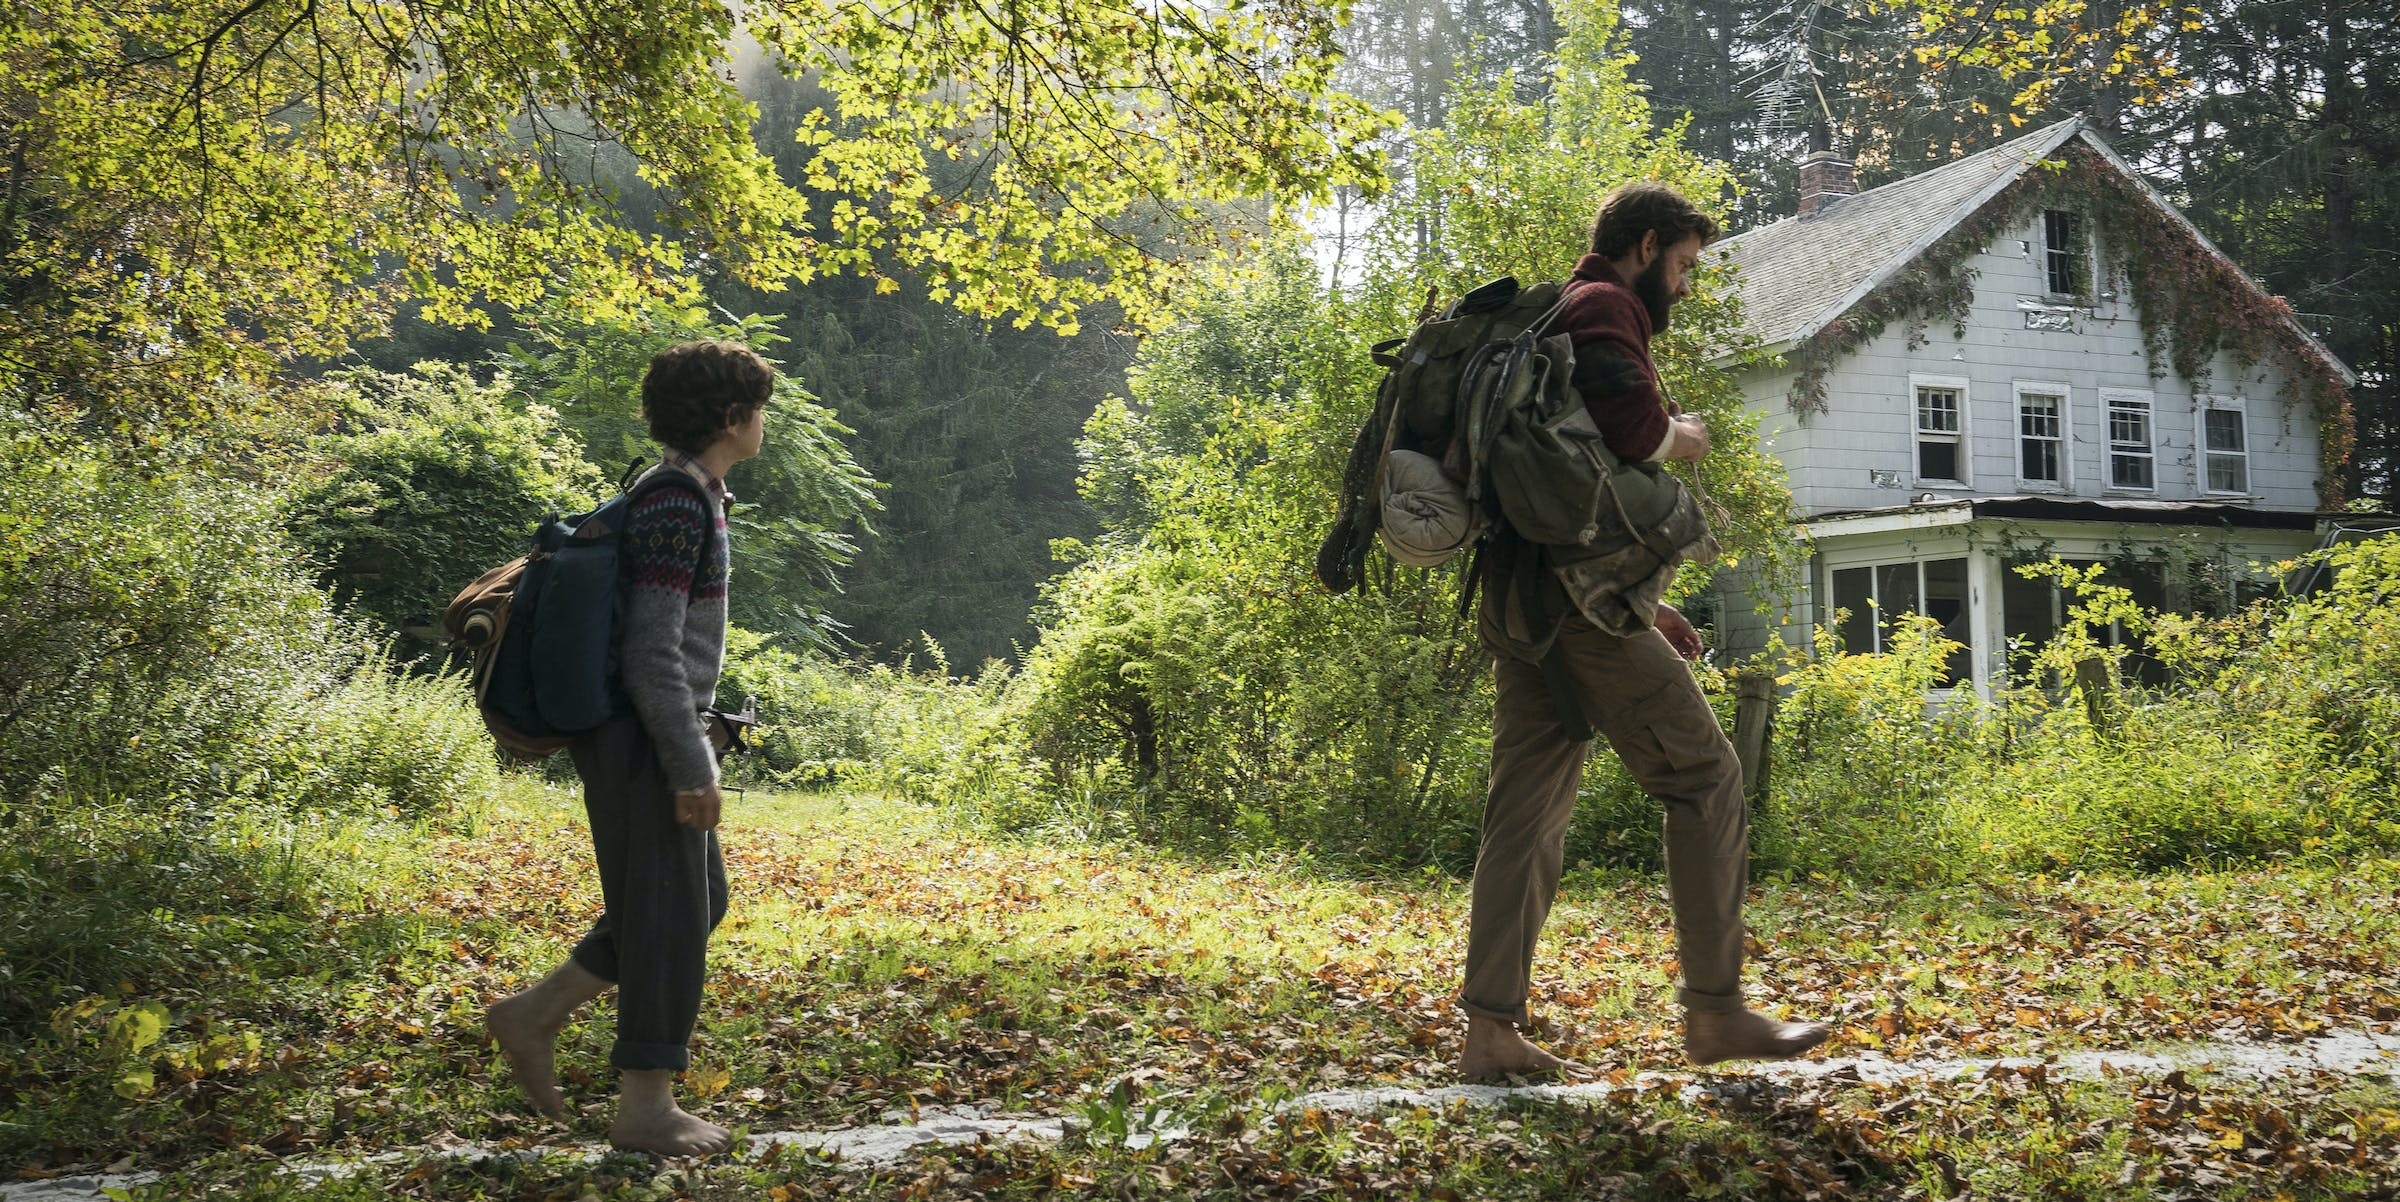 In 'A Quiet Place', the creature is SO scary you have to walk barefoot.